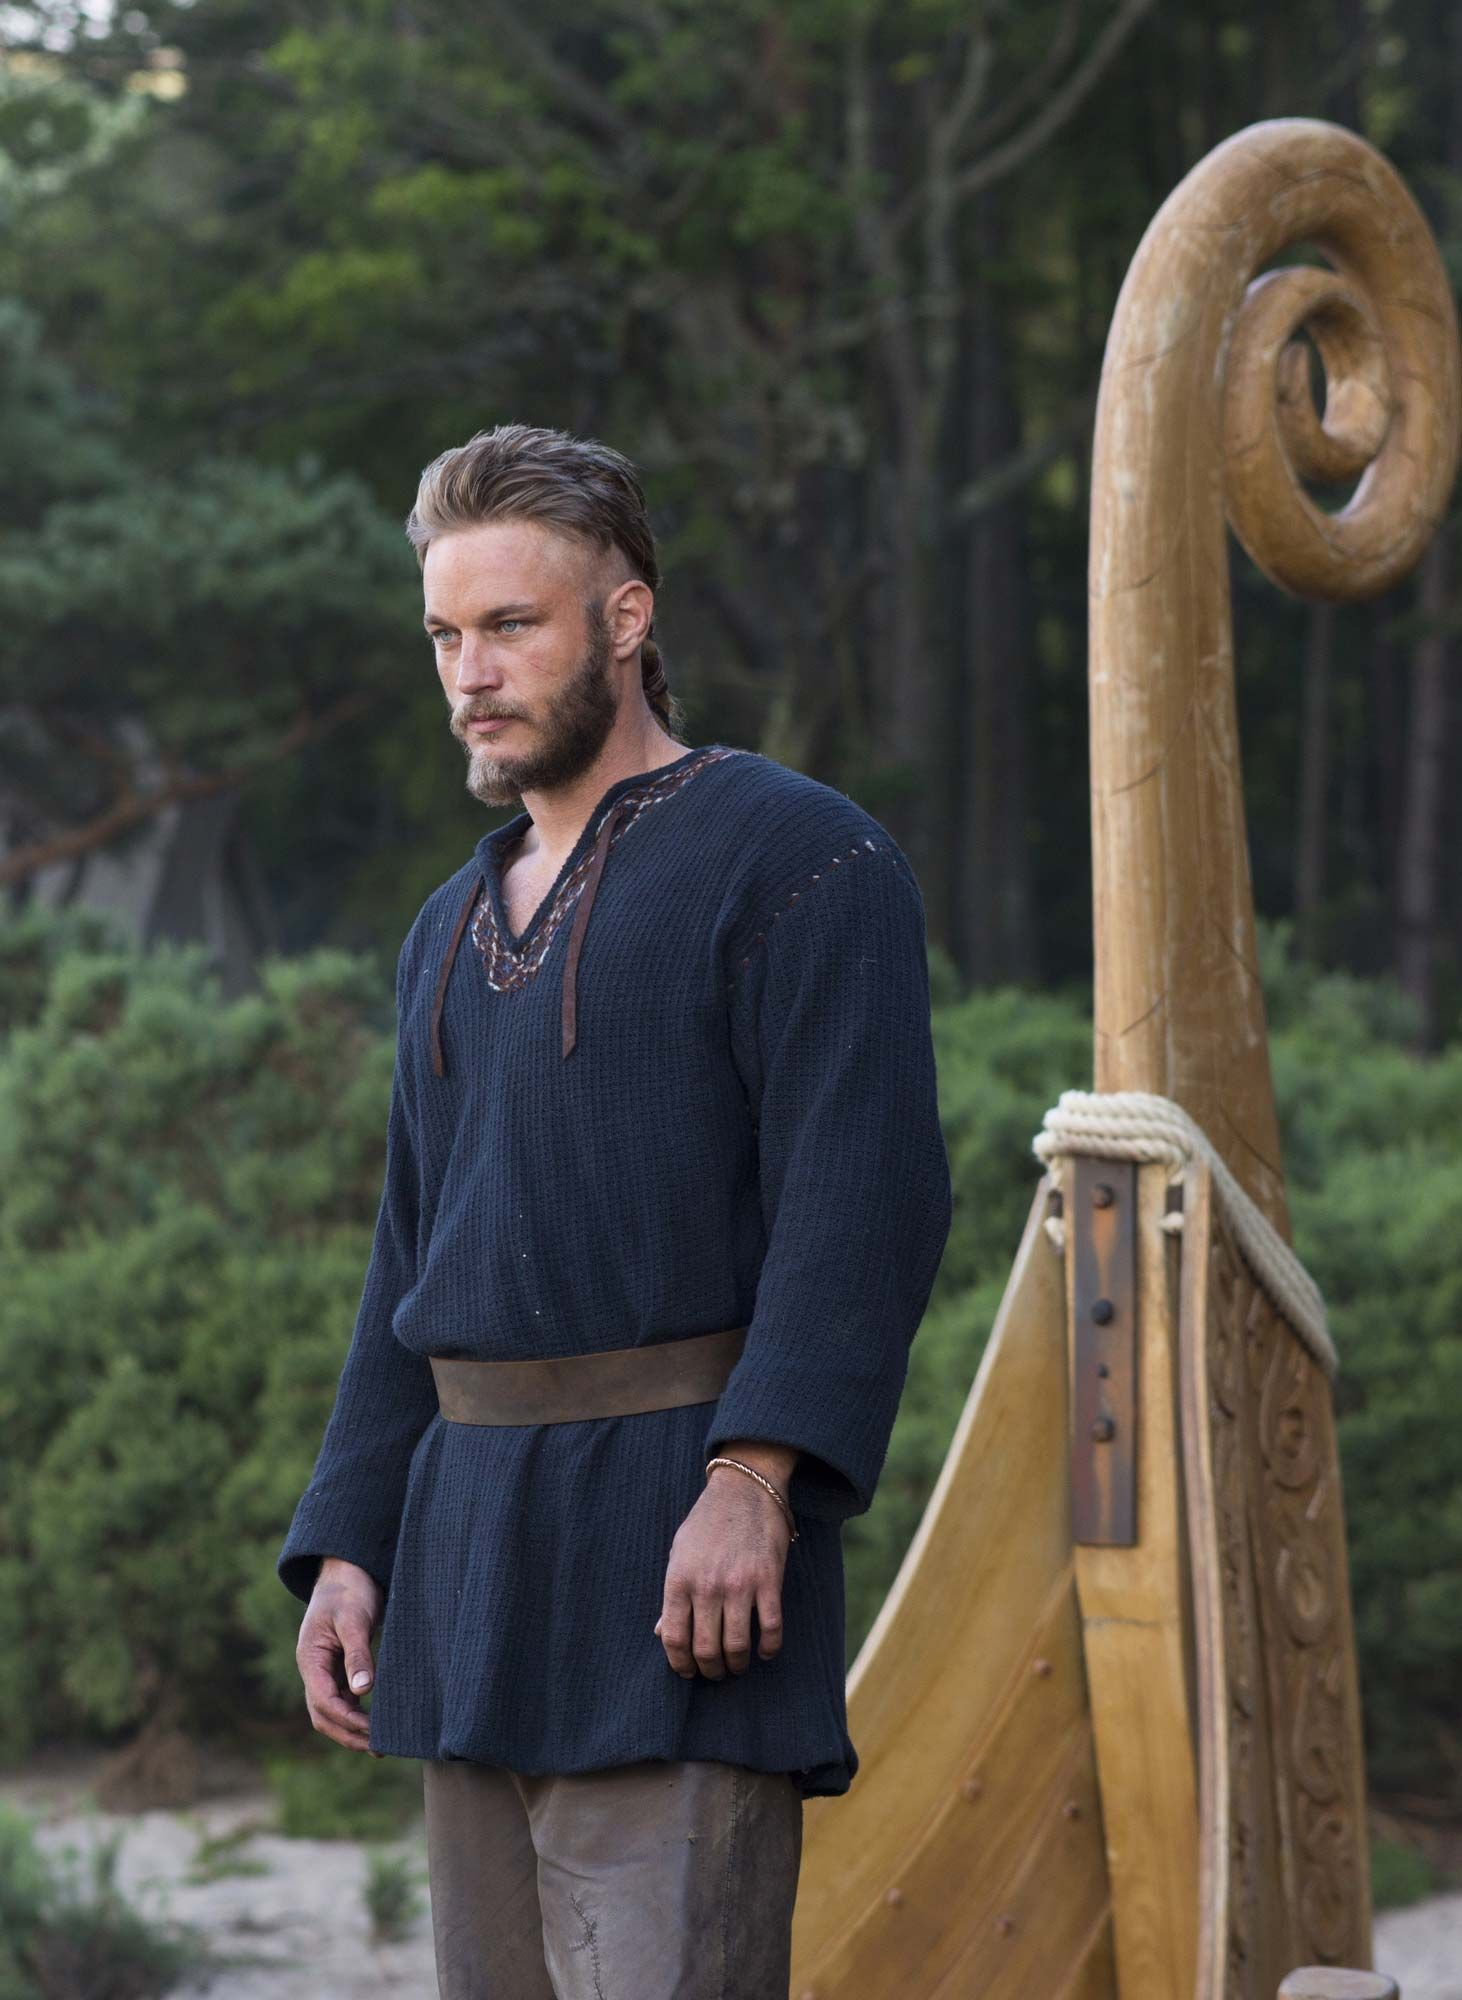 Vikings (series 2013 - ) Starring: Travis Fimmel as Ragnar Lothbrok, a Viking farmer and warrior who yearns to raid the rumored riches of undiscovered England. (click thru for high res)